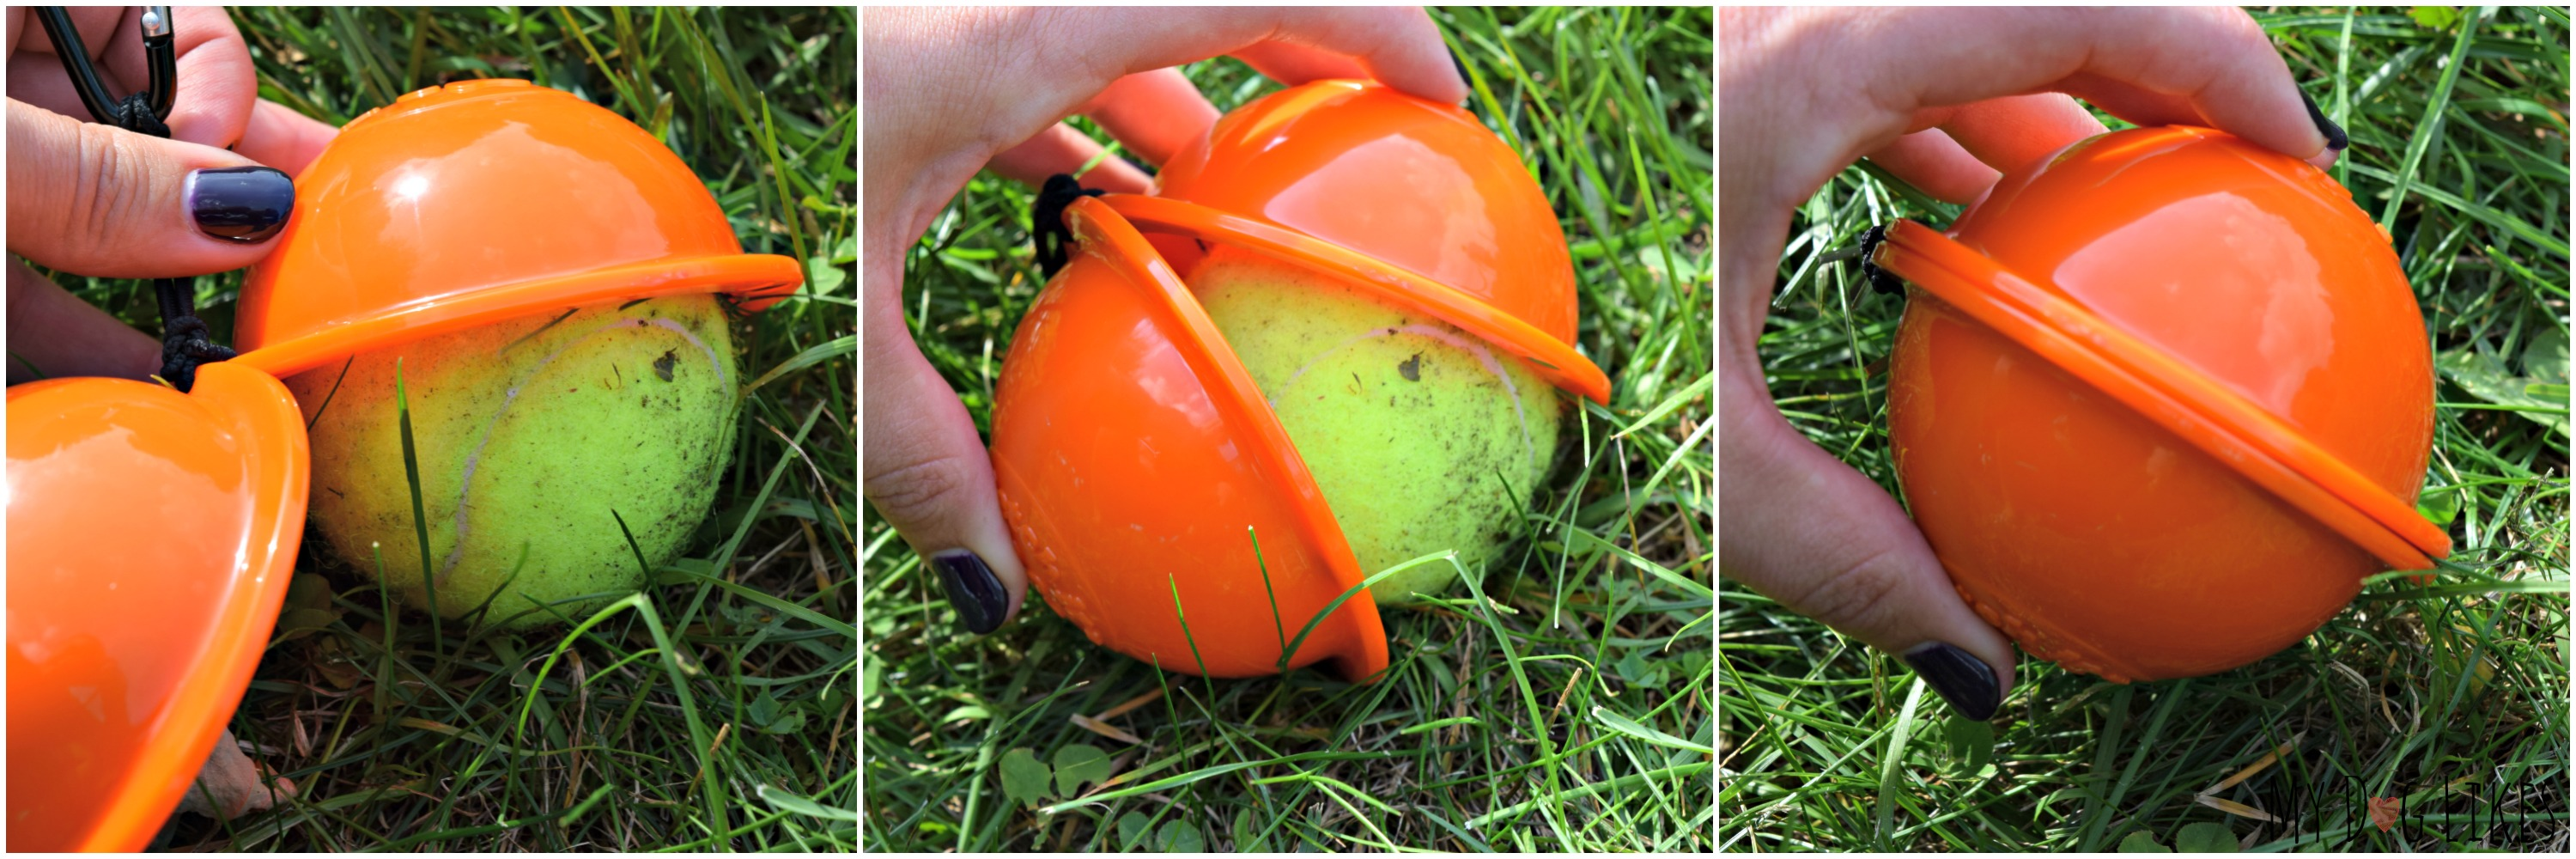 Putting a ball into our Fetch it Tennis Ball Holder